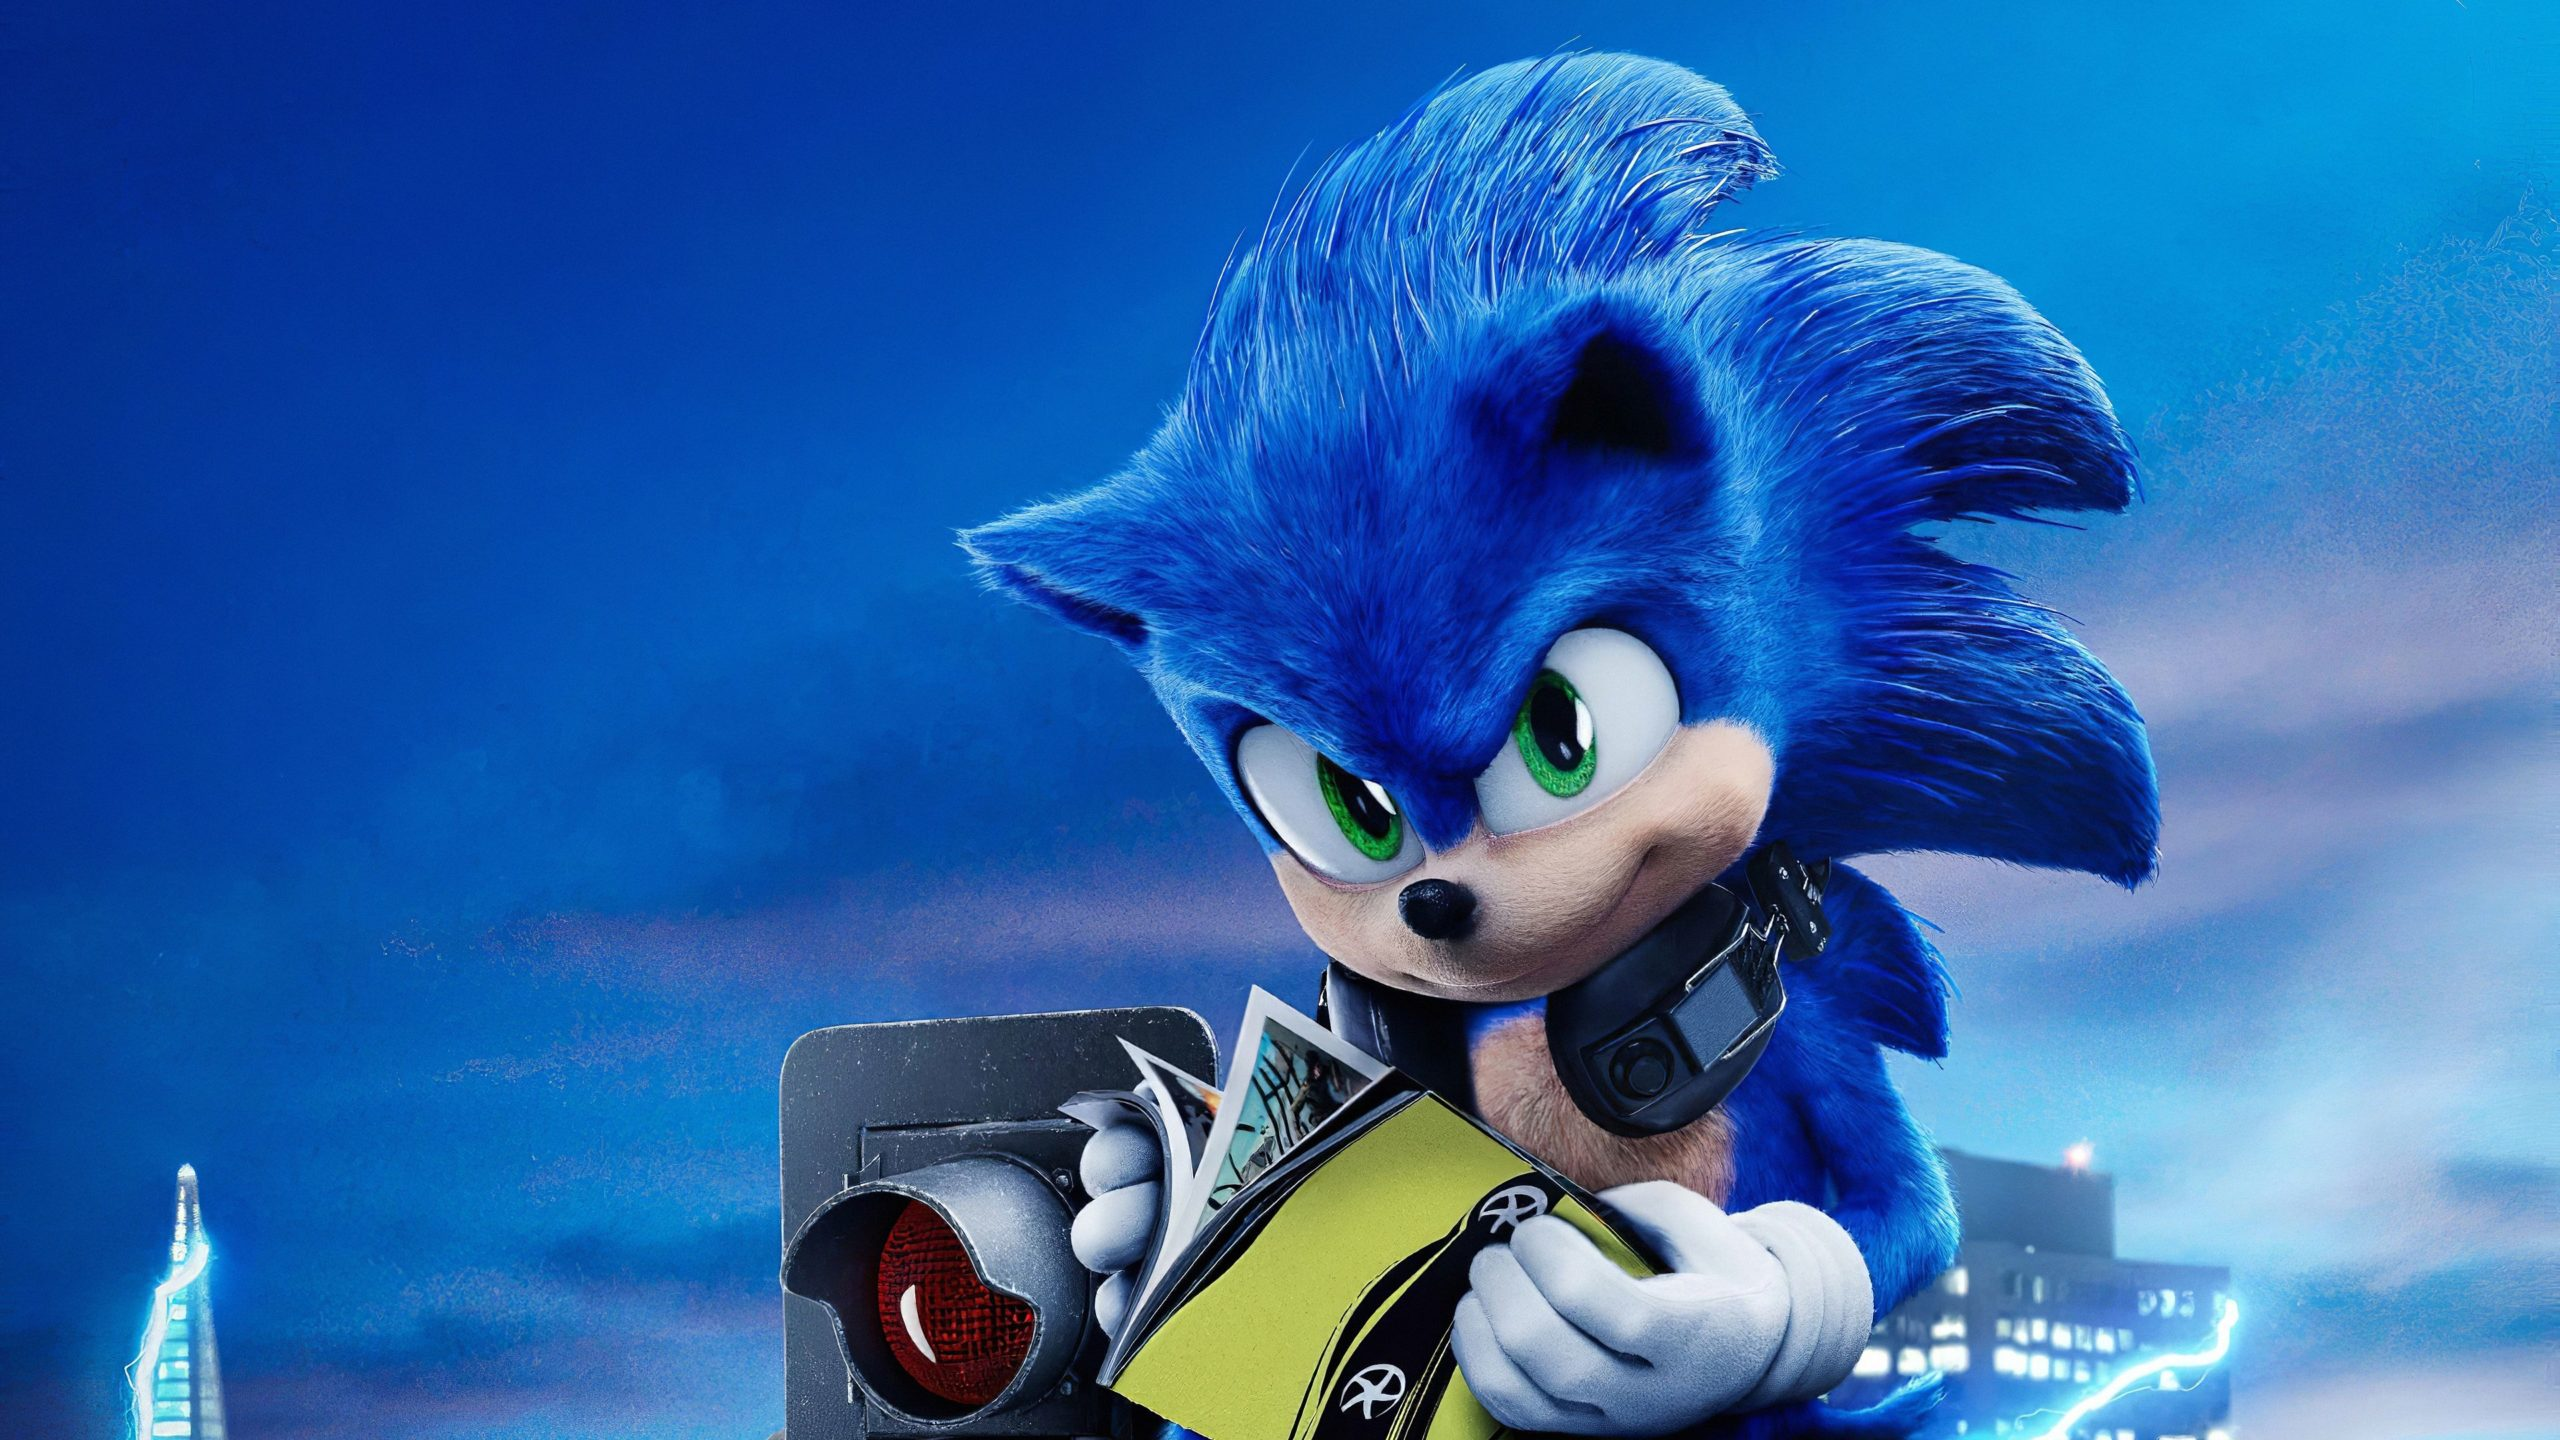 sonic screensaver images